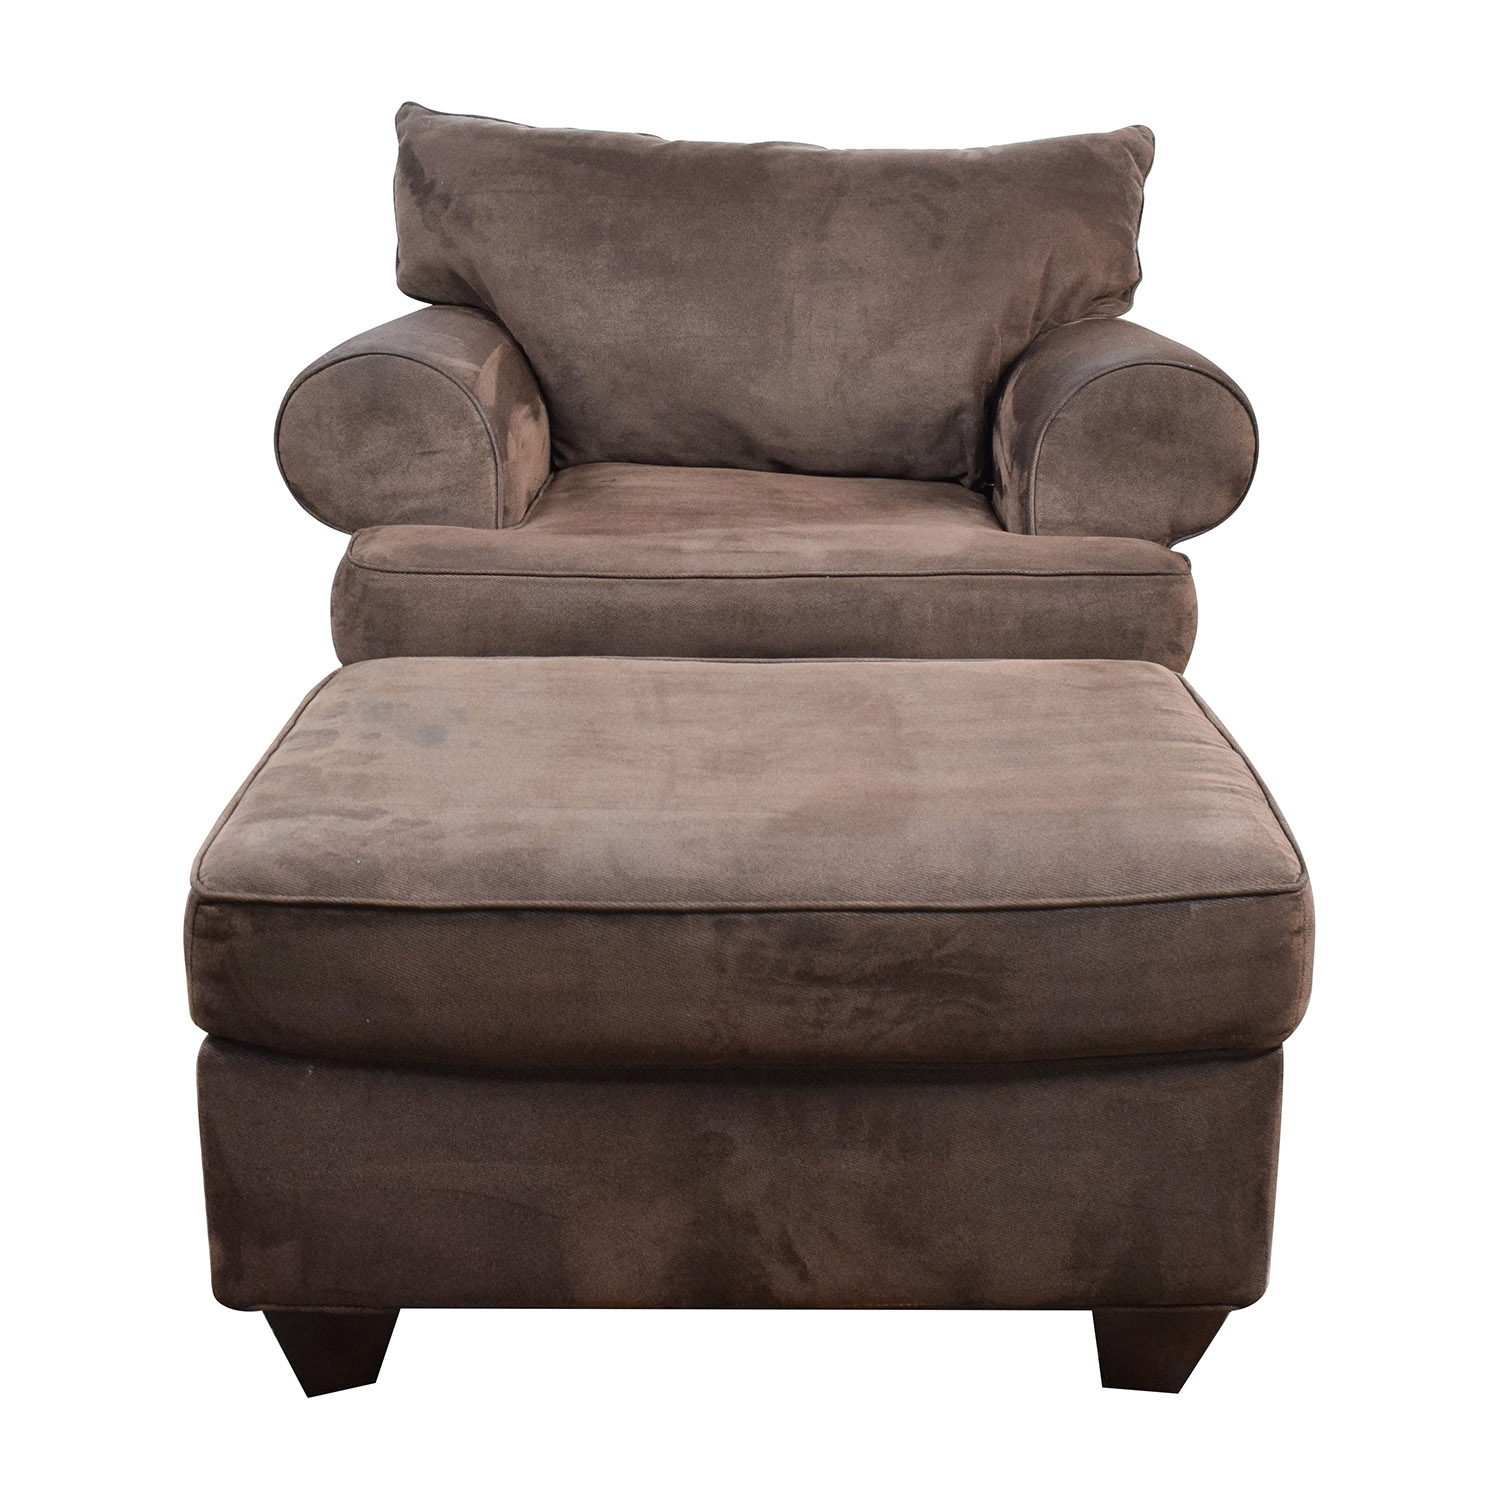 67% Off - Dark Brown Sofa Chair With Ottoman / Chairs for Chairs With Ottoman (Image 2 of 15)